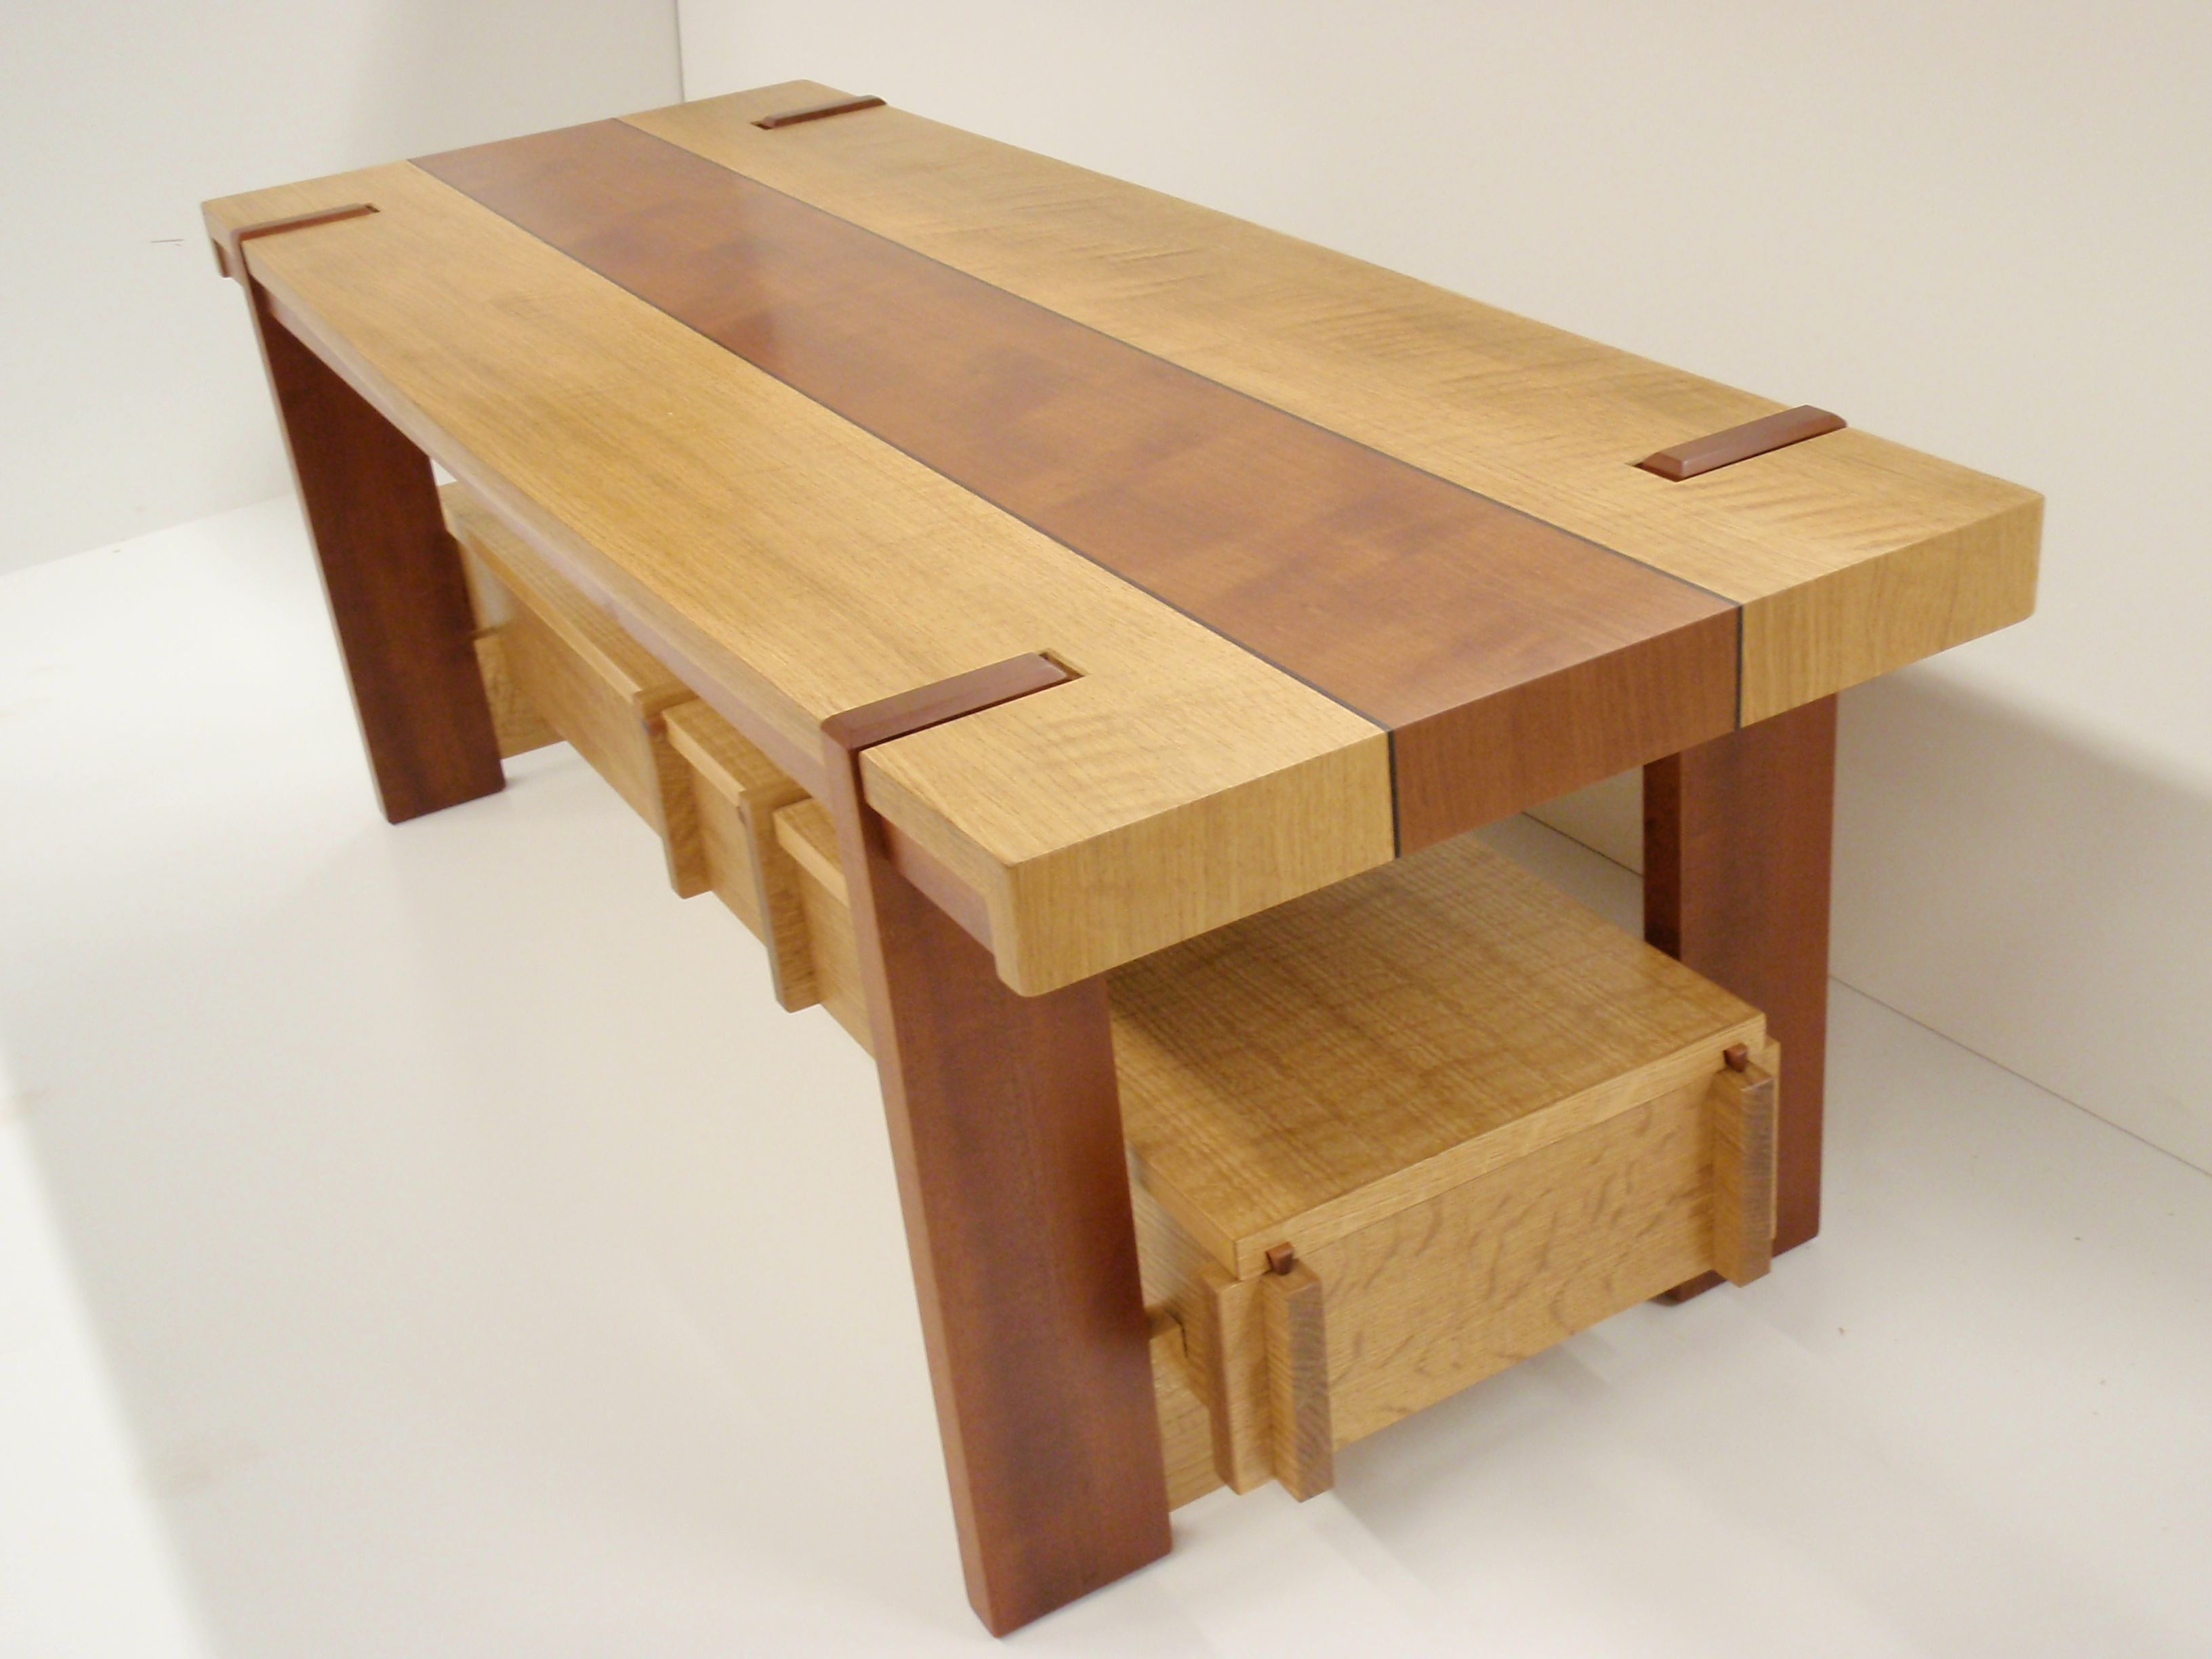 cofee table in white oak and unknown secies with ebony